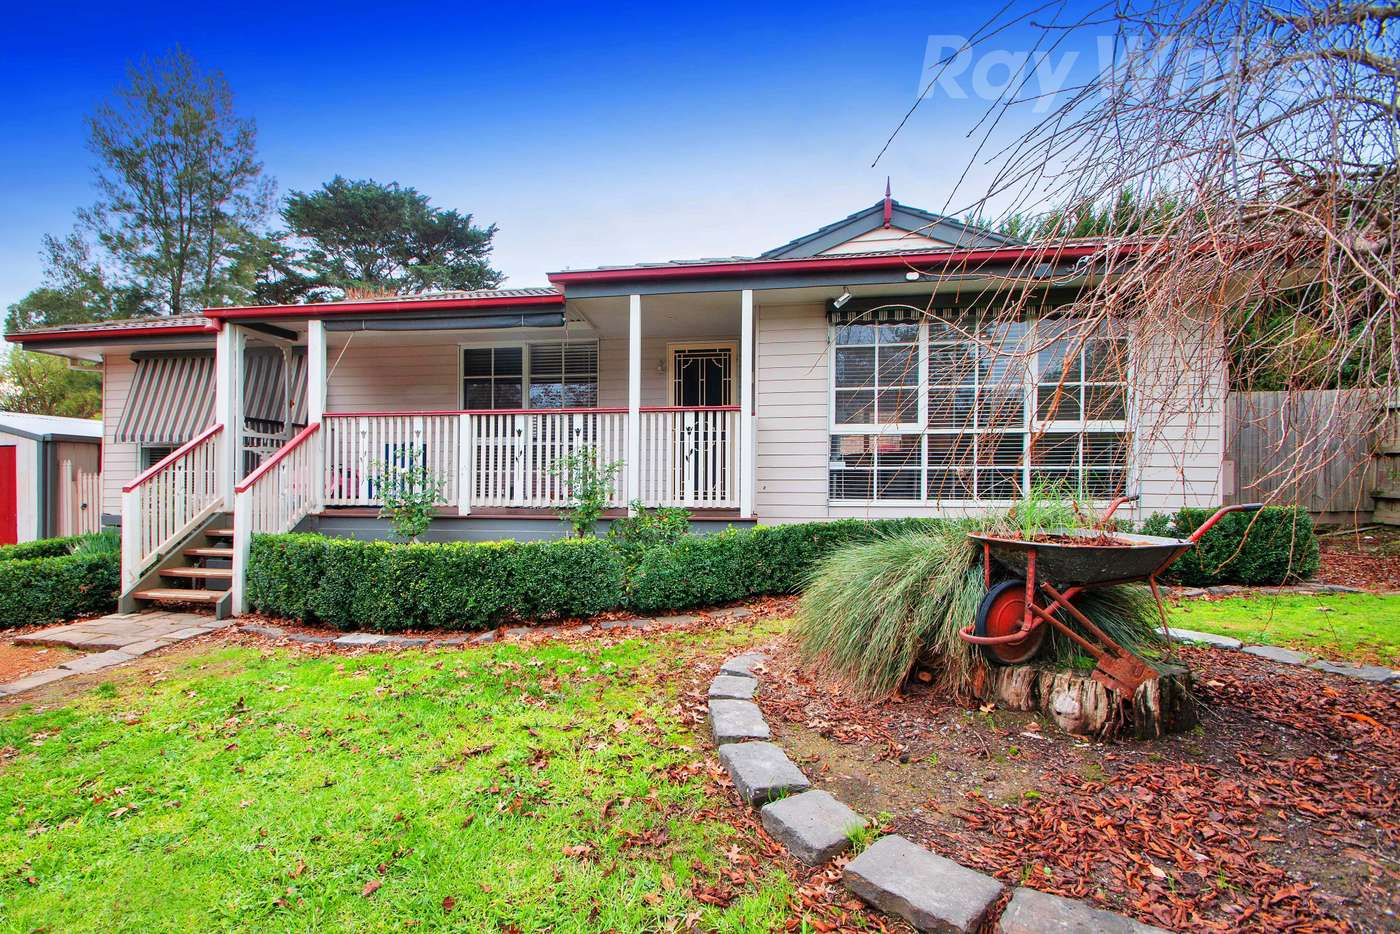 Main view of Homely house listing, 3 Monbulk-Seville Road, Seville VIC 3139